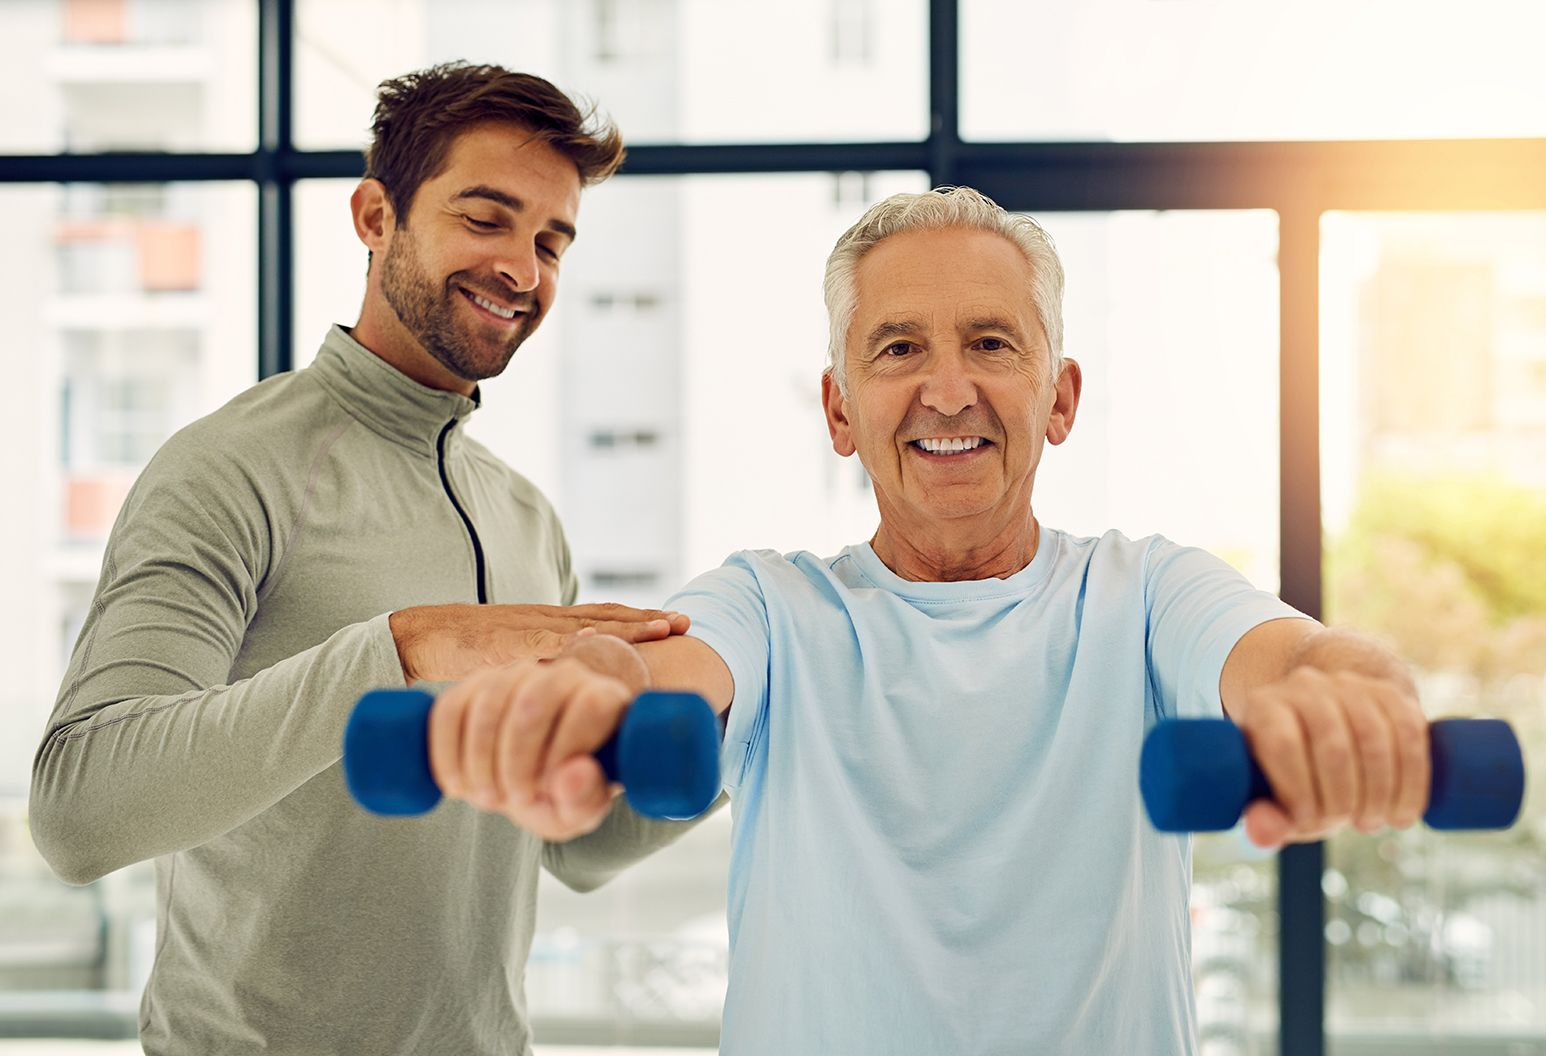 Portrait of a friendly physiotherapist helping his senior patient work out with weights